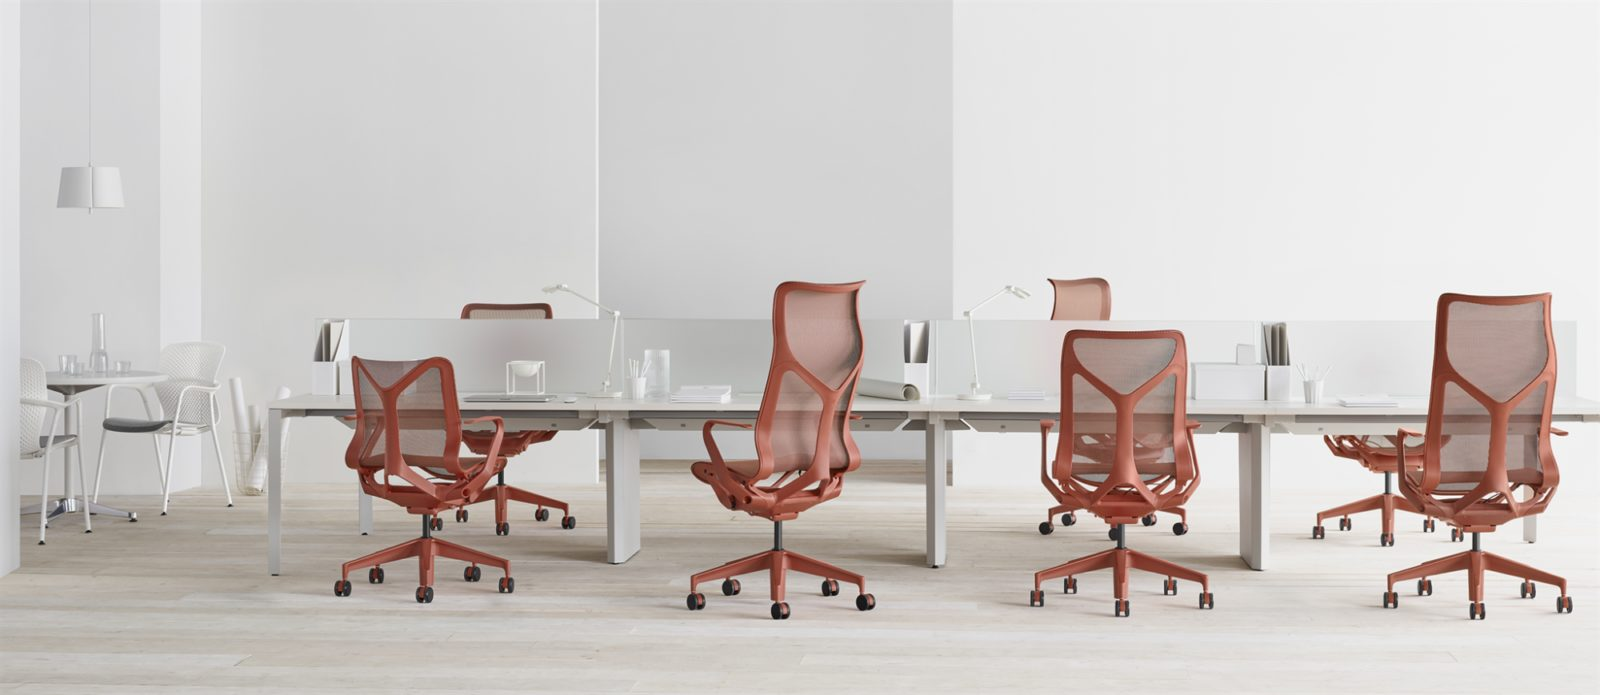 Cosm Chairs in red at desks